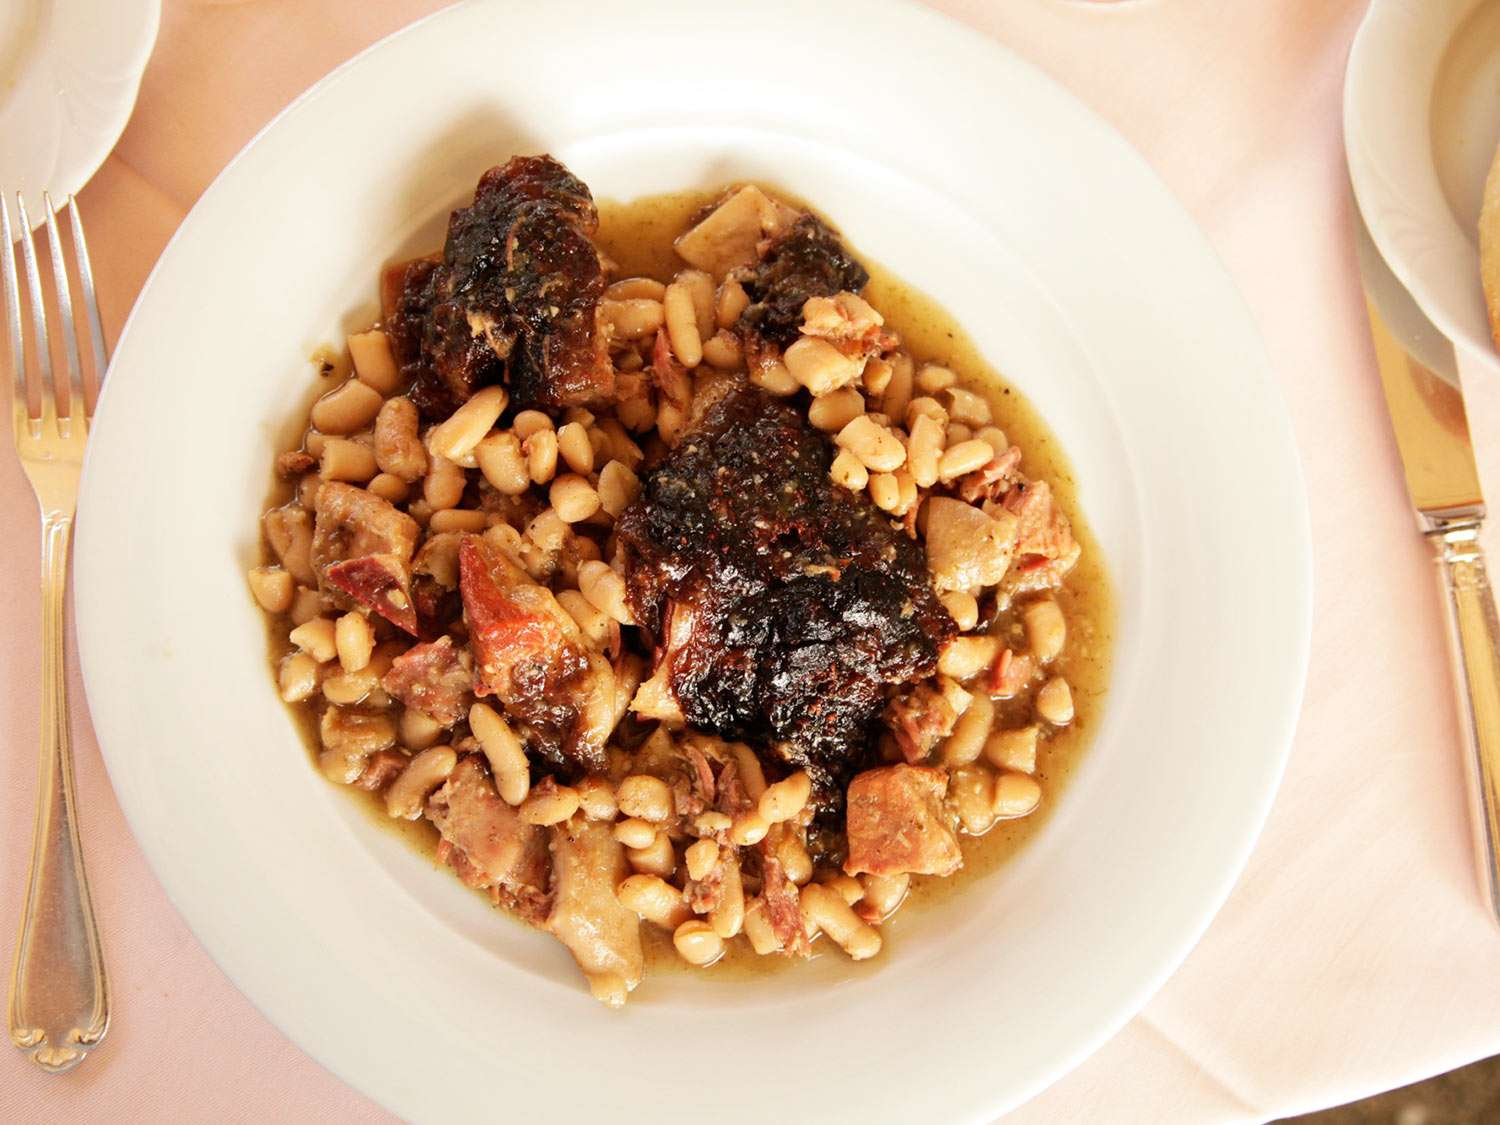 Traditional cassoulet served on a plate in Languedoc, France.